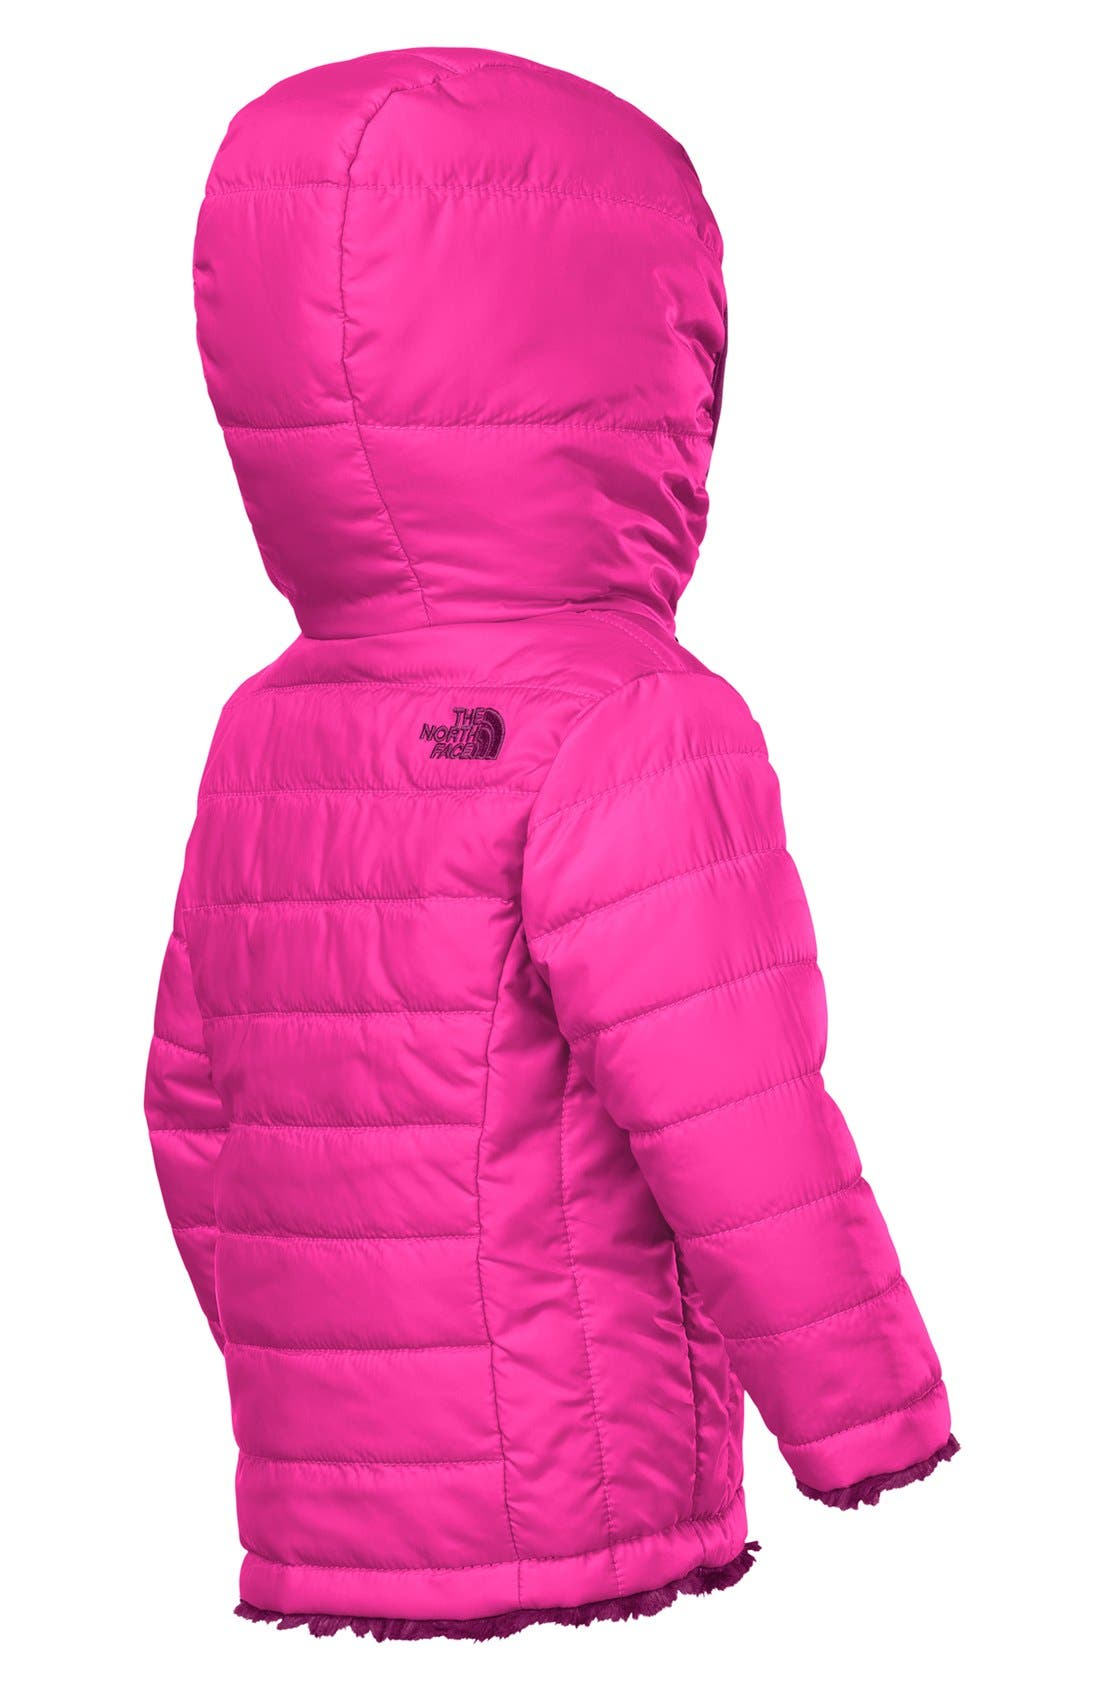 Alternate Image 2  - The North Face 'Mossbud Swirl' Reversible Water Repellent Jacket (Baby Girls)